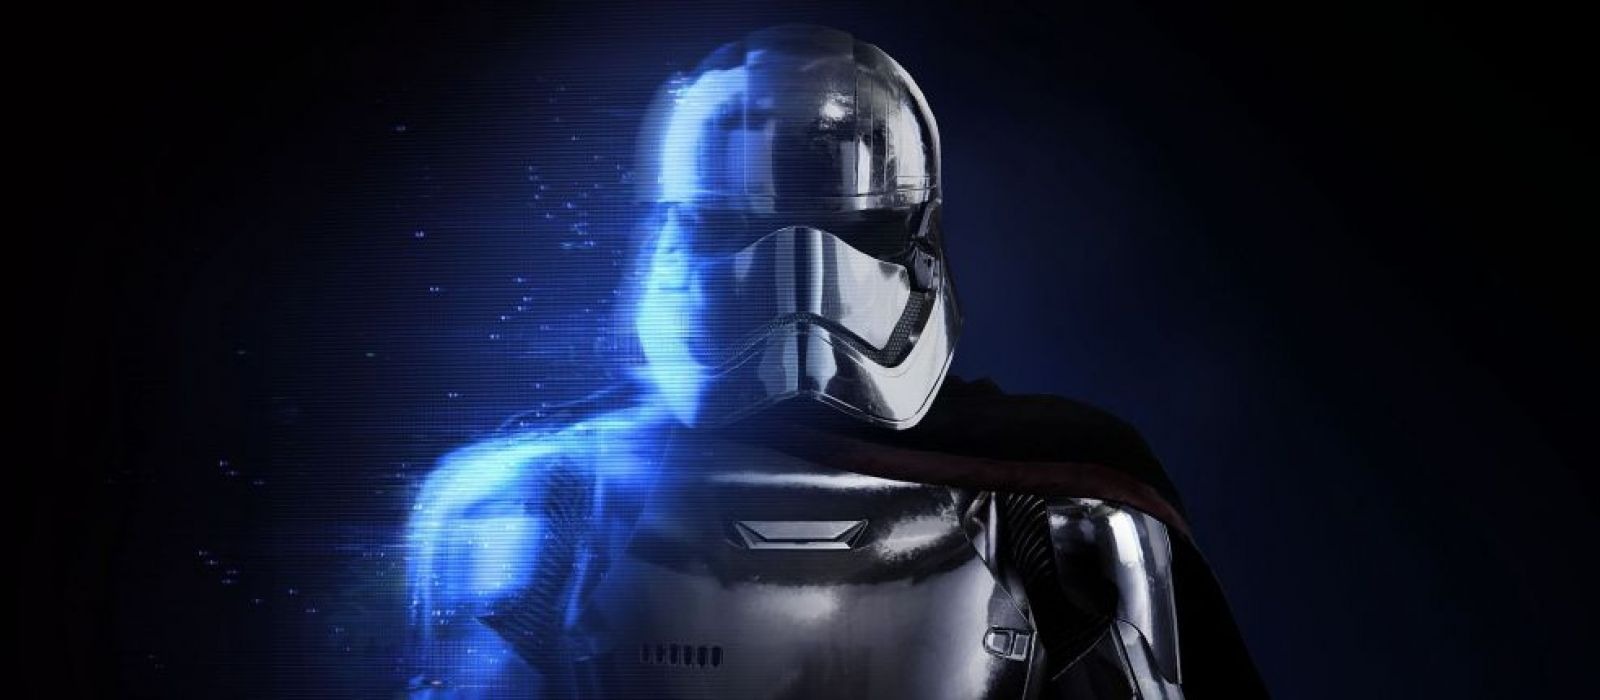 Аналитик: «Star Wars: Battlefront 2 негативно повлияла на акции и доход Electronic Arts»